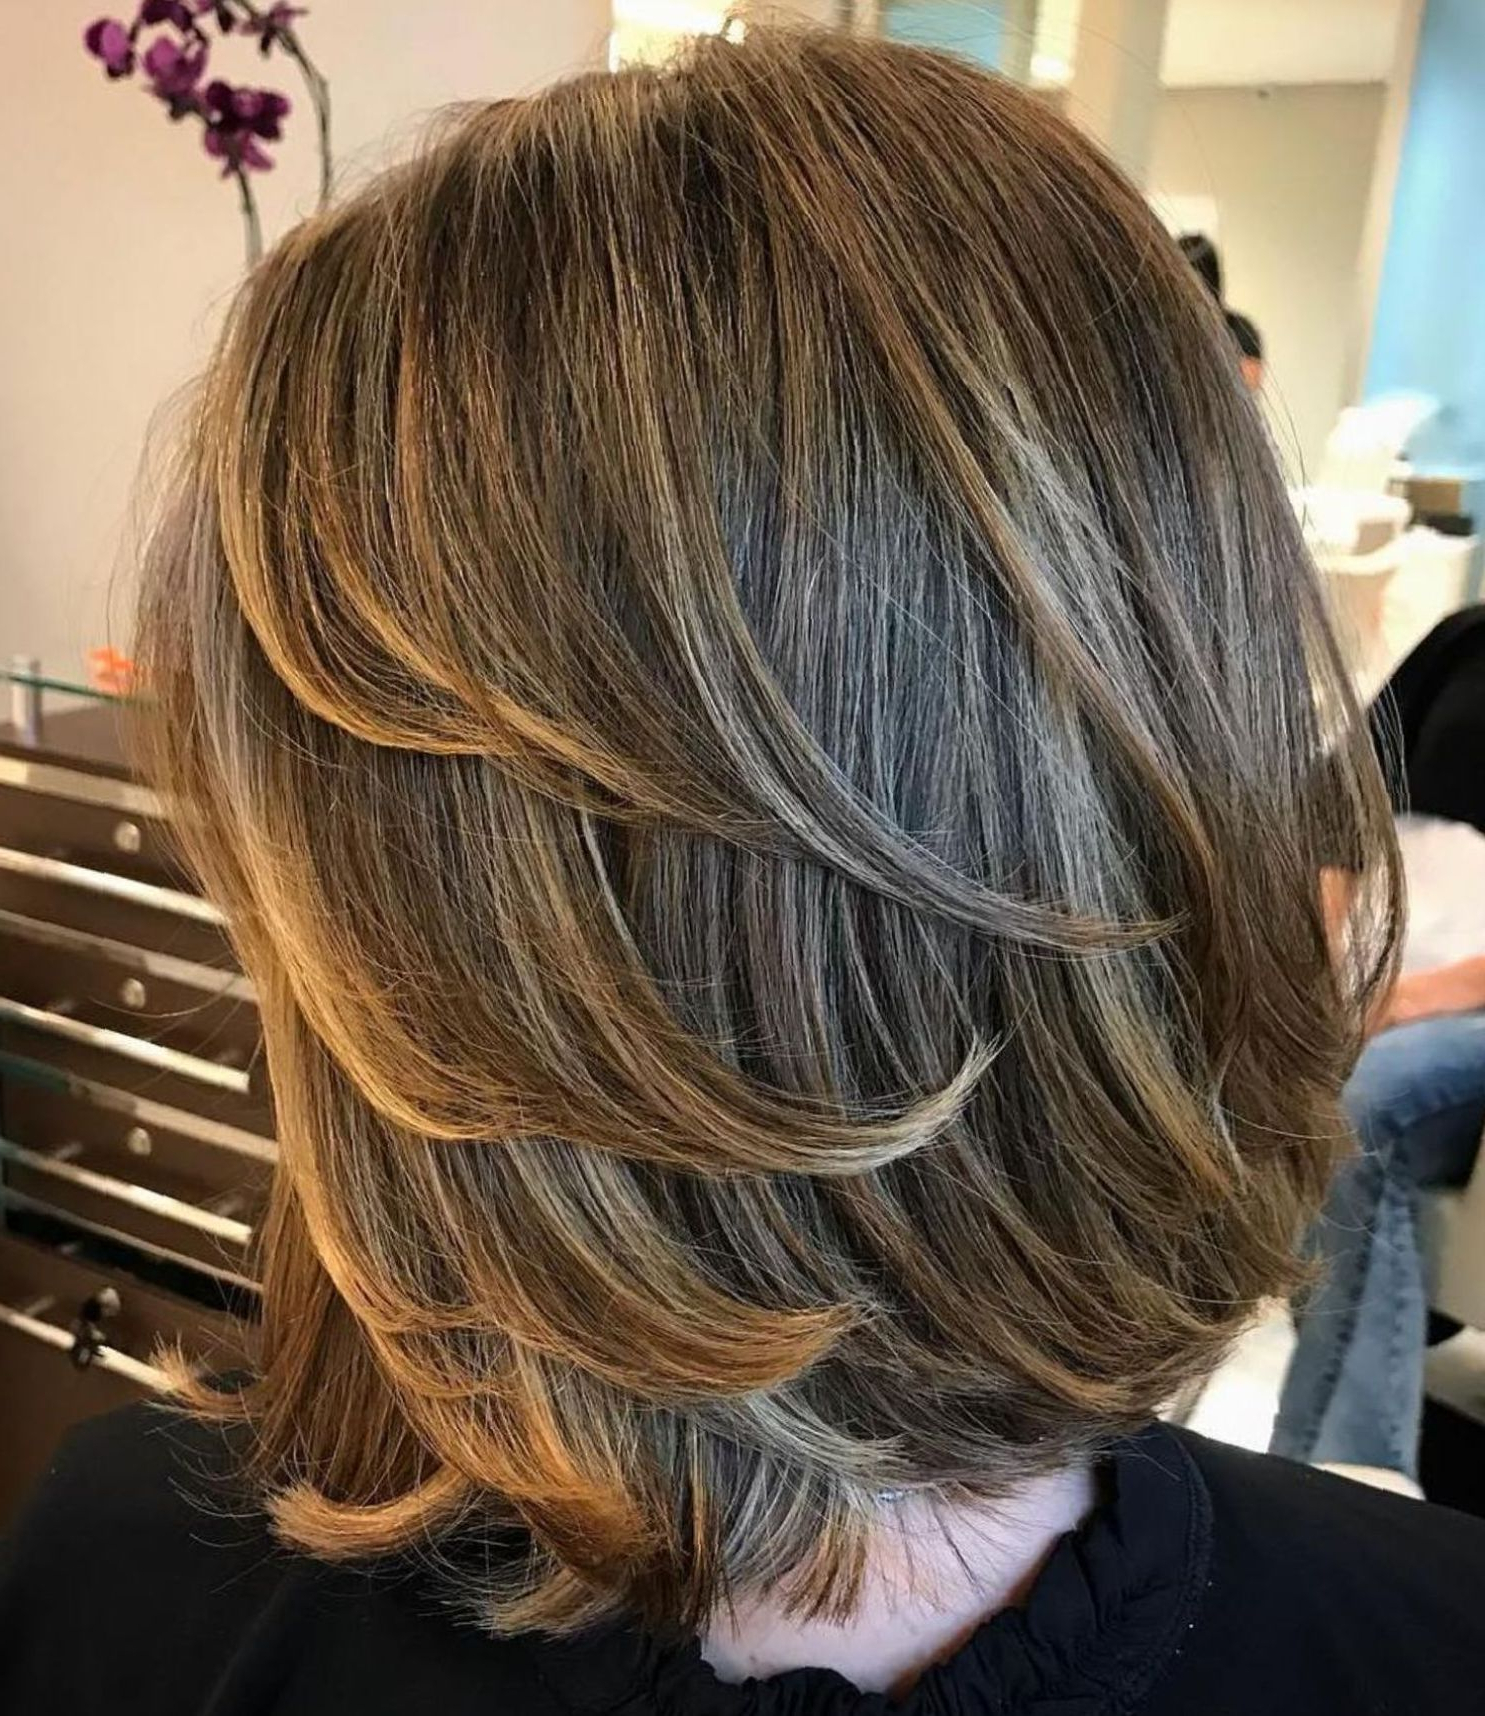 80 Sensational Medium Length Haircuts For Thick Hair (Gallery 4 of 20)